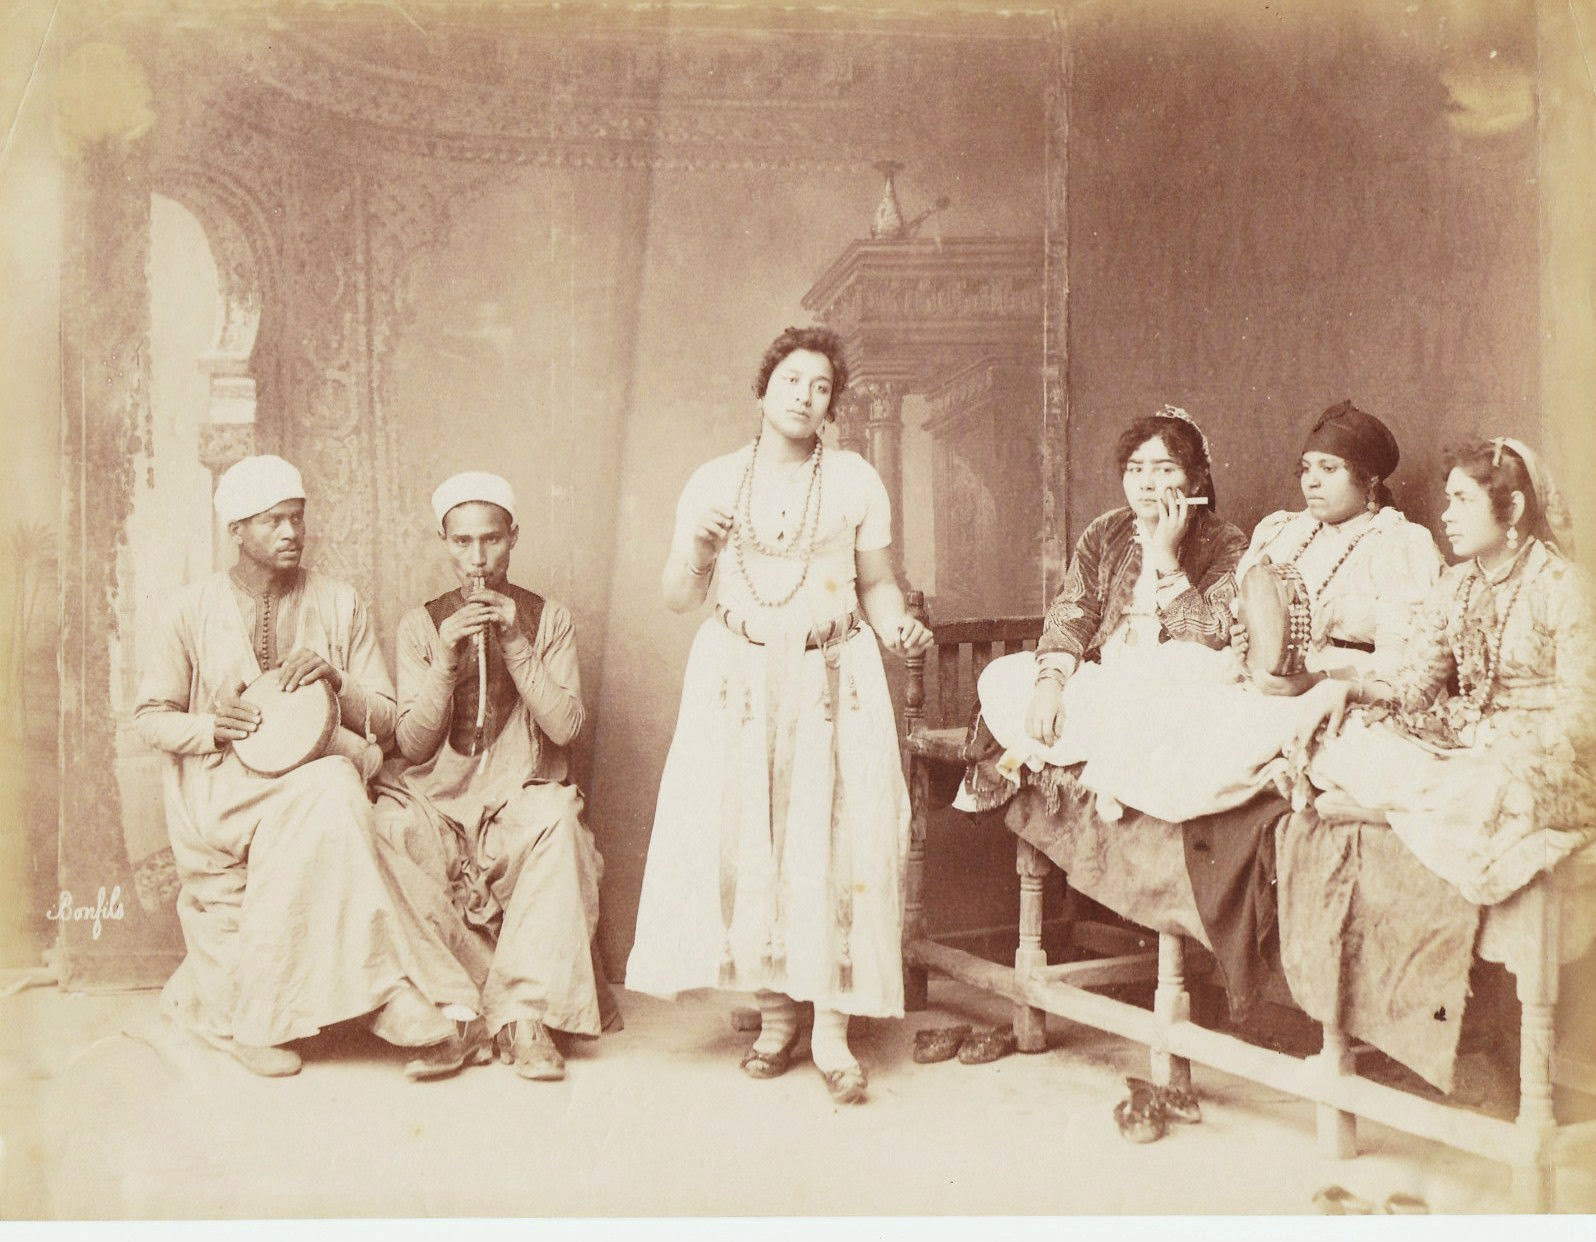 Arab Dancing Woman with Musicians - Egypt c1875